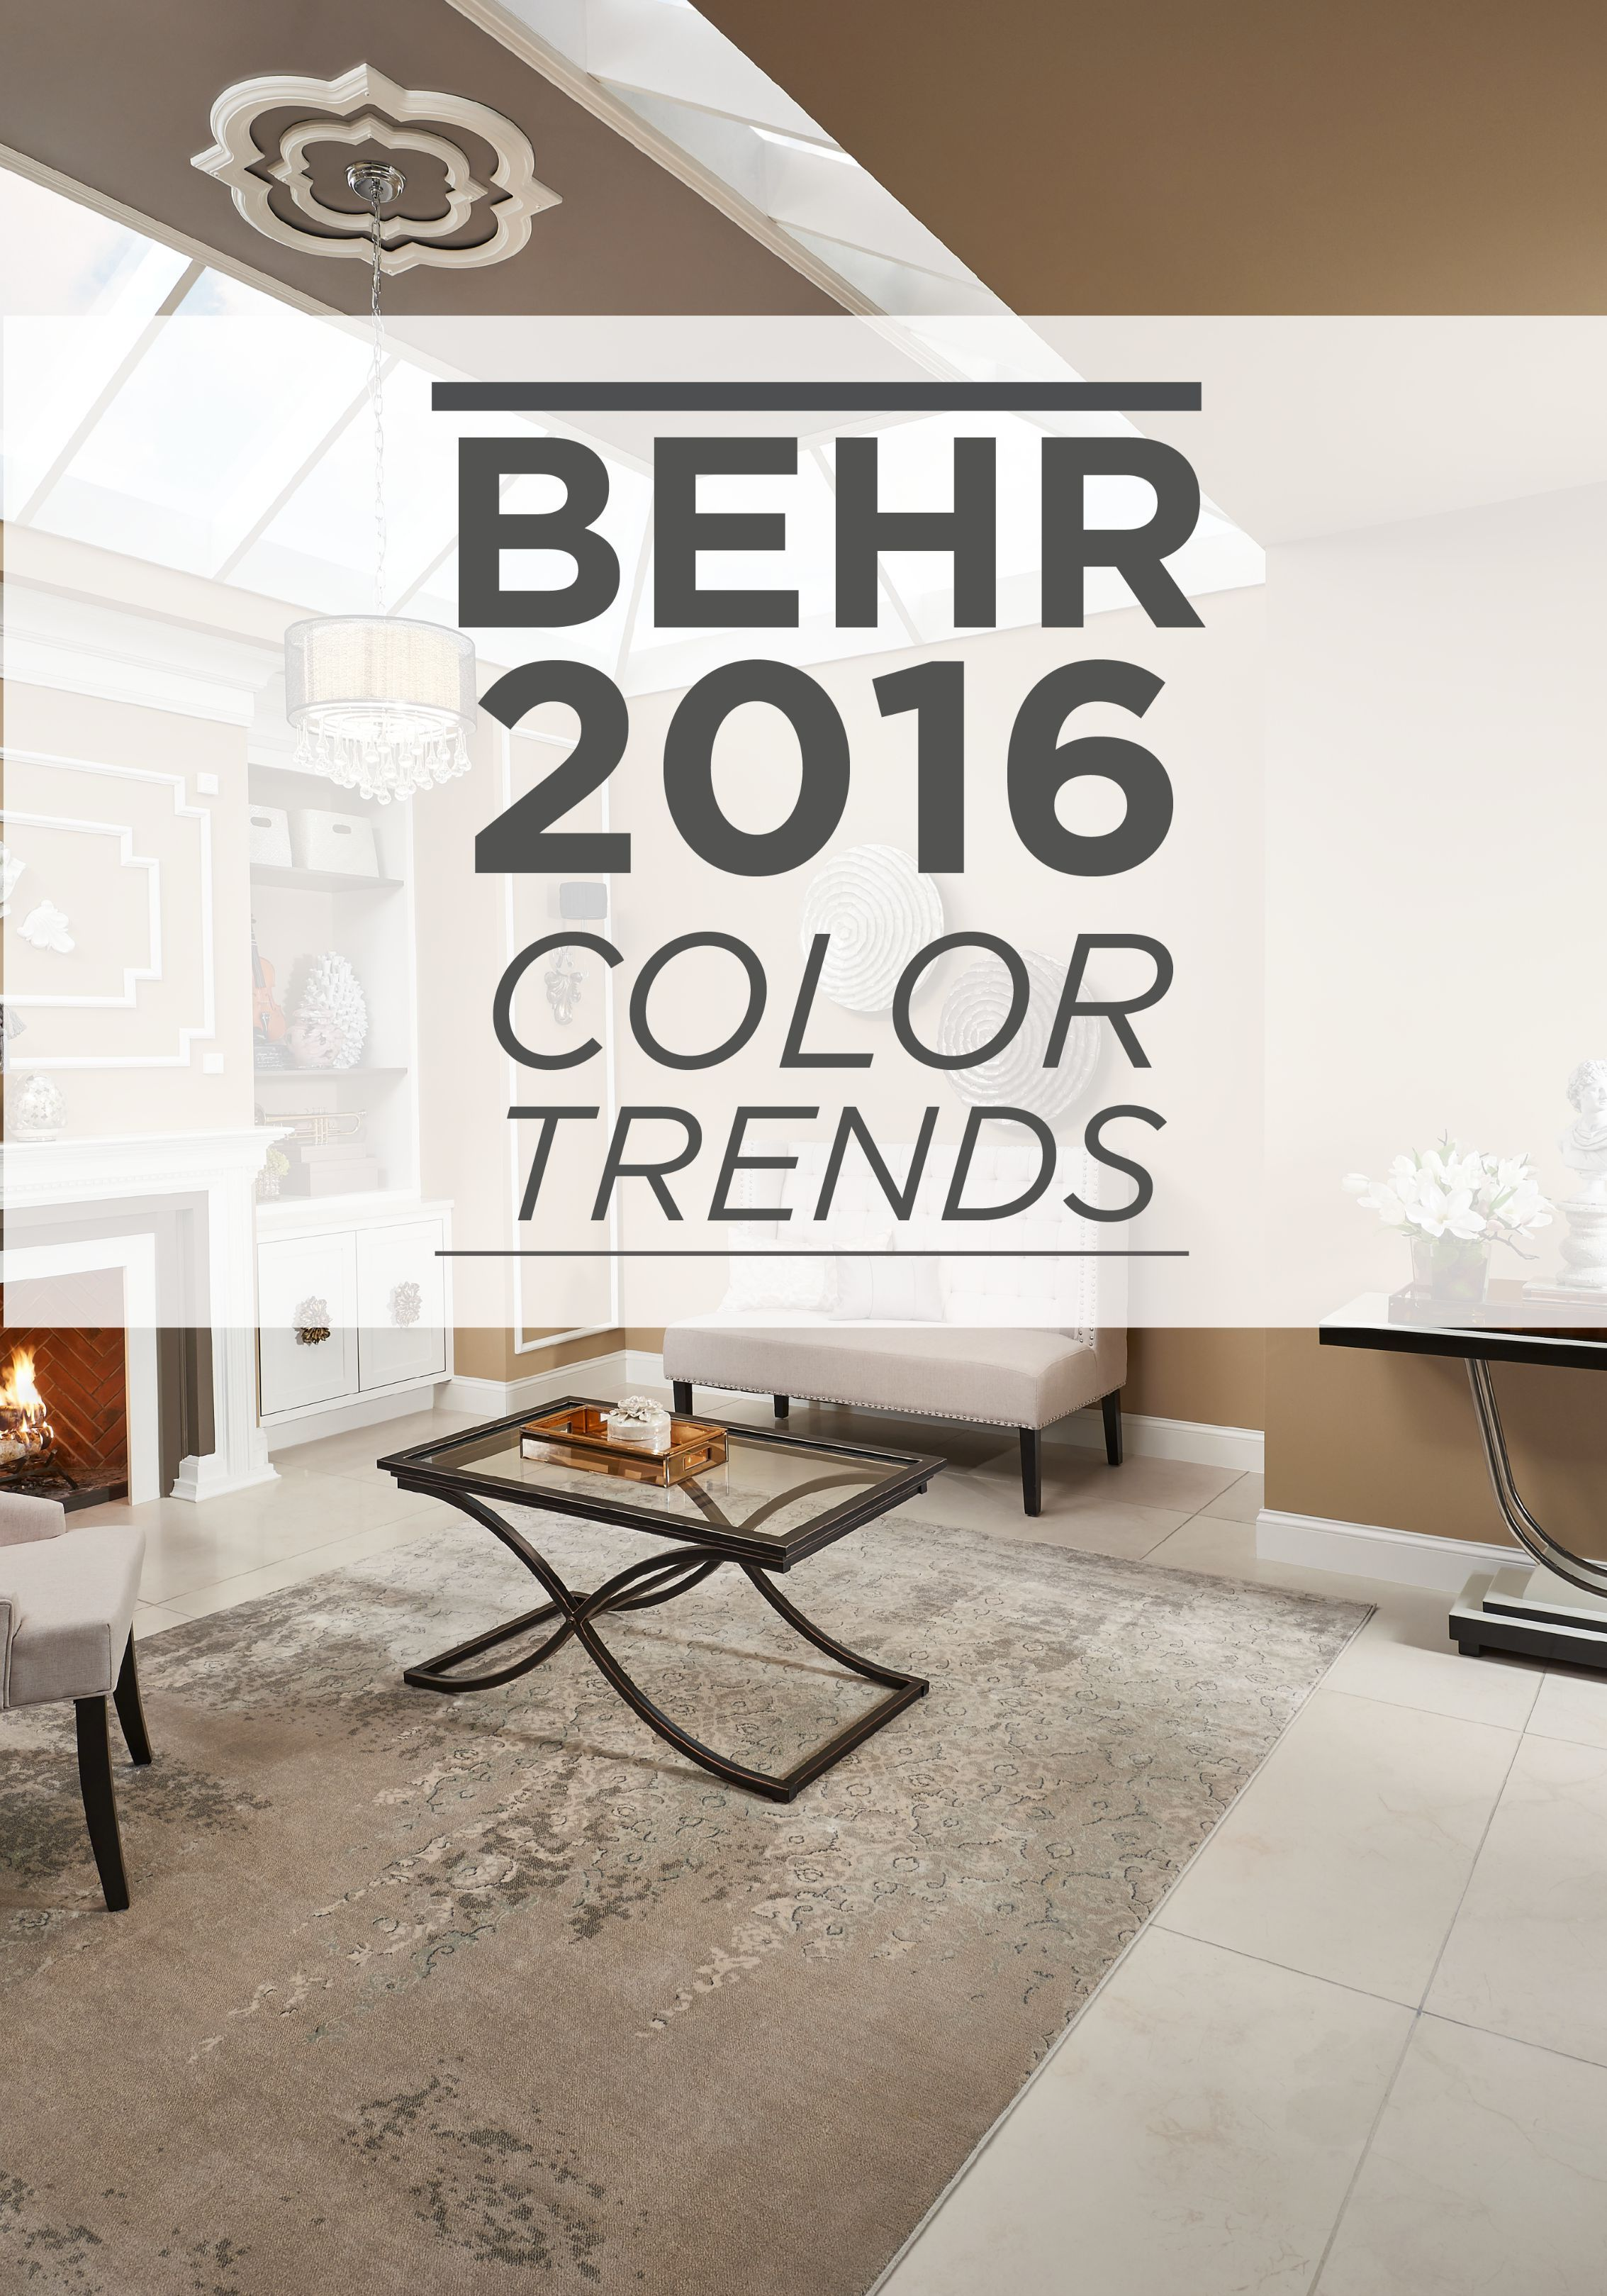 2015 Behr Color Trends Bedrooms Behr colors and House